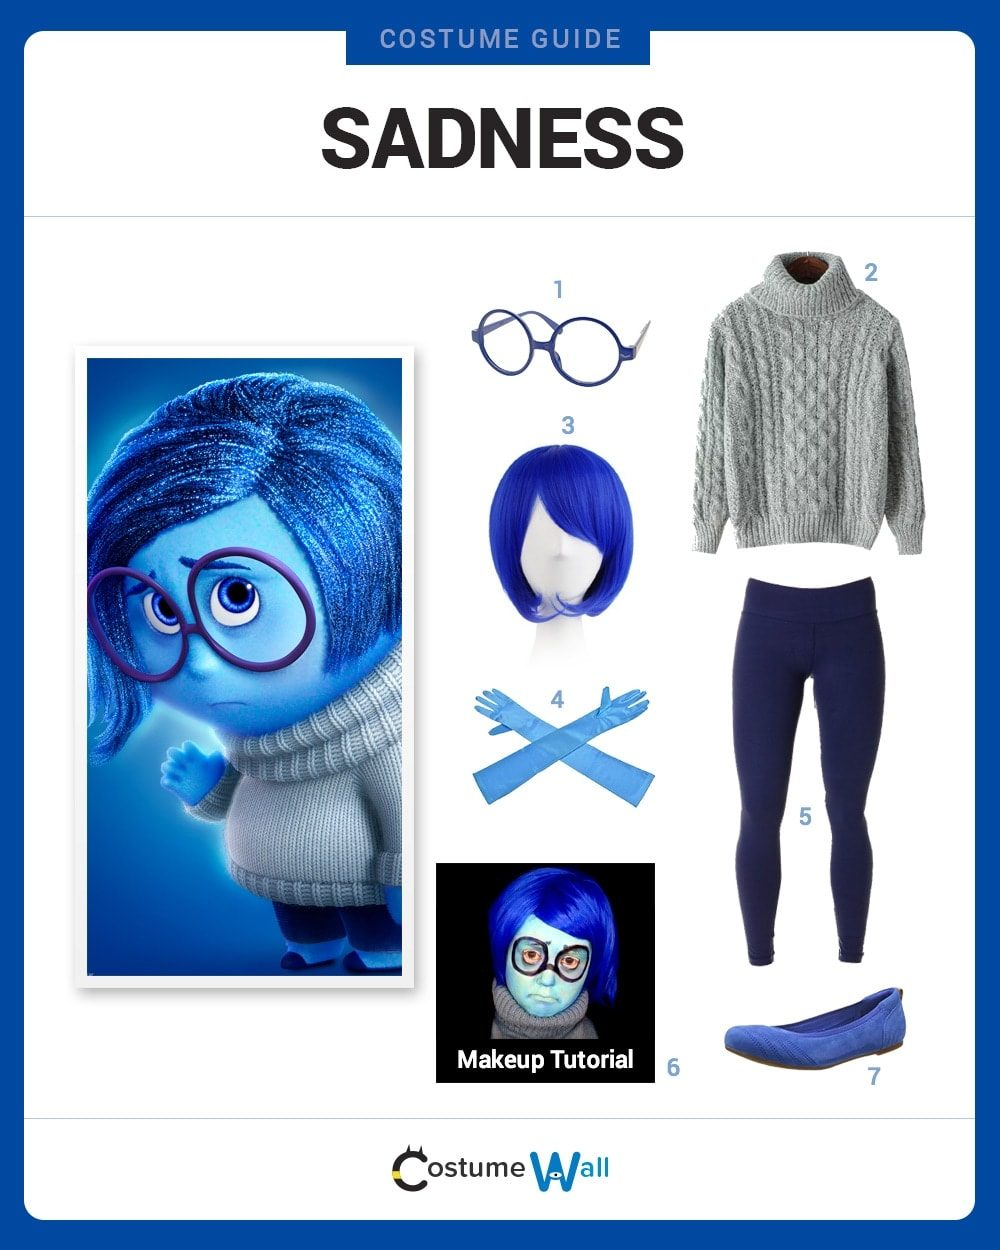 Sadness Costume Guide